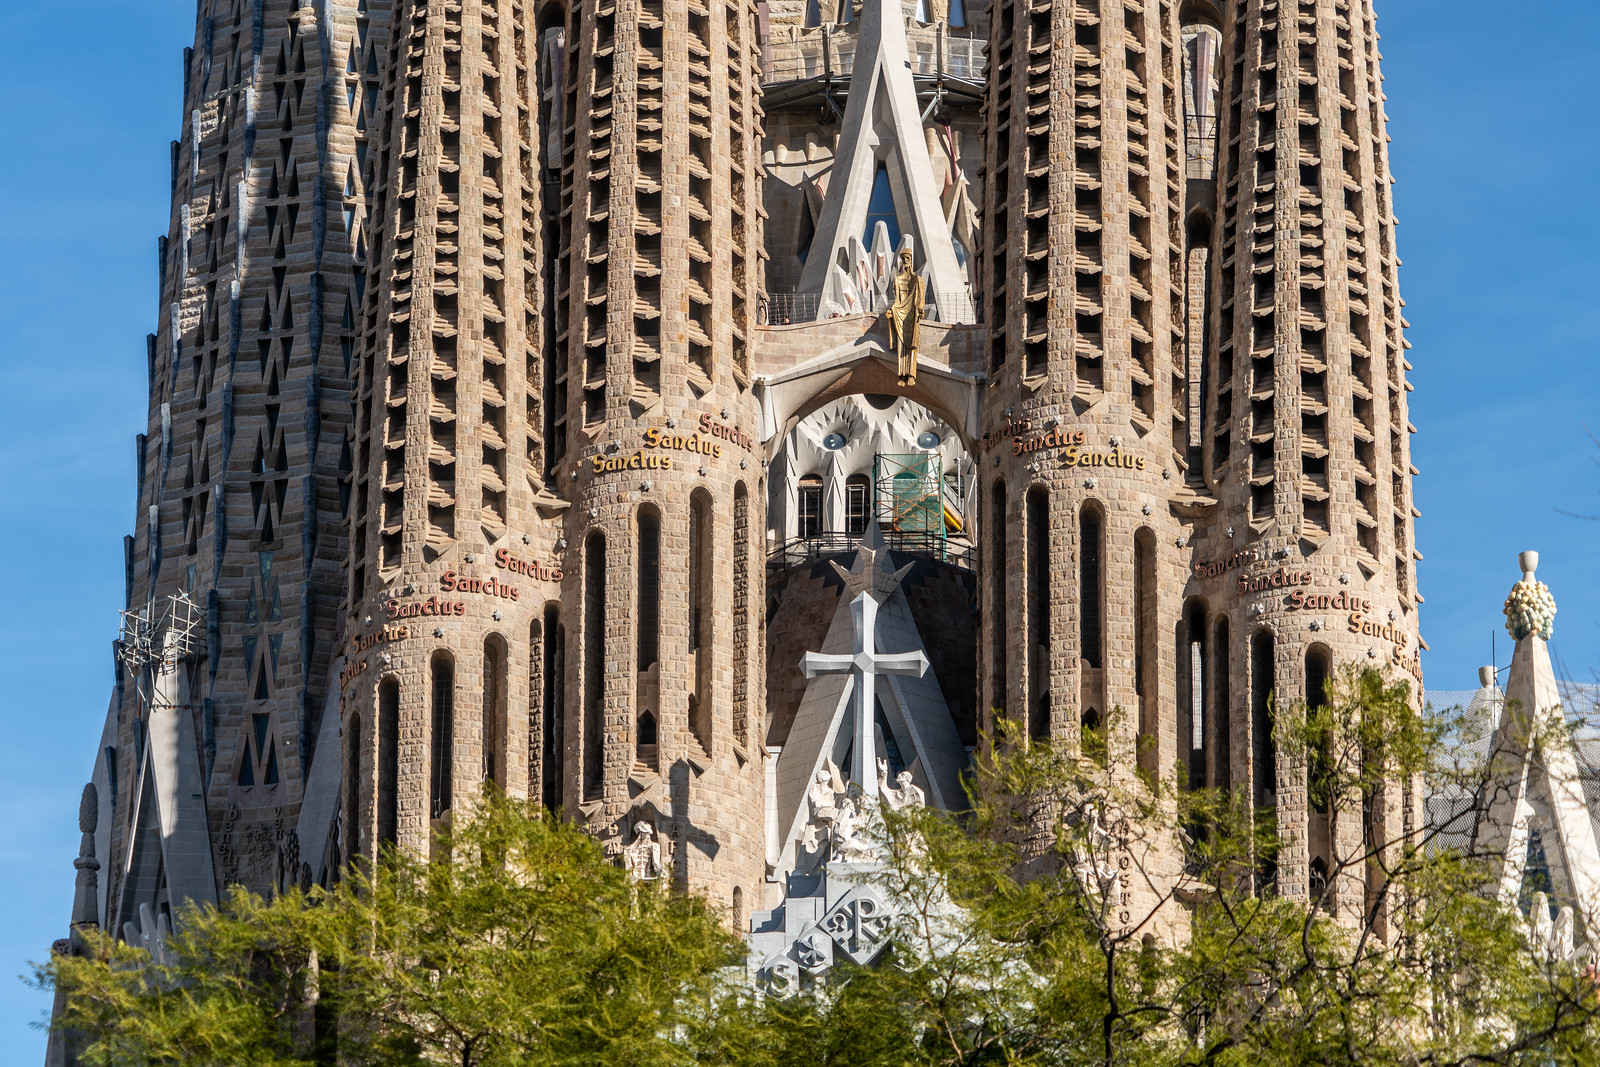 The Architecture and Works of Antoni Gaudi in Barcelona